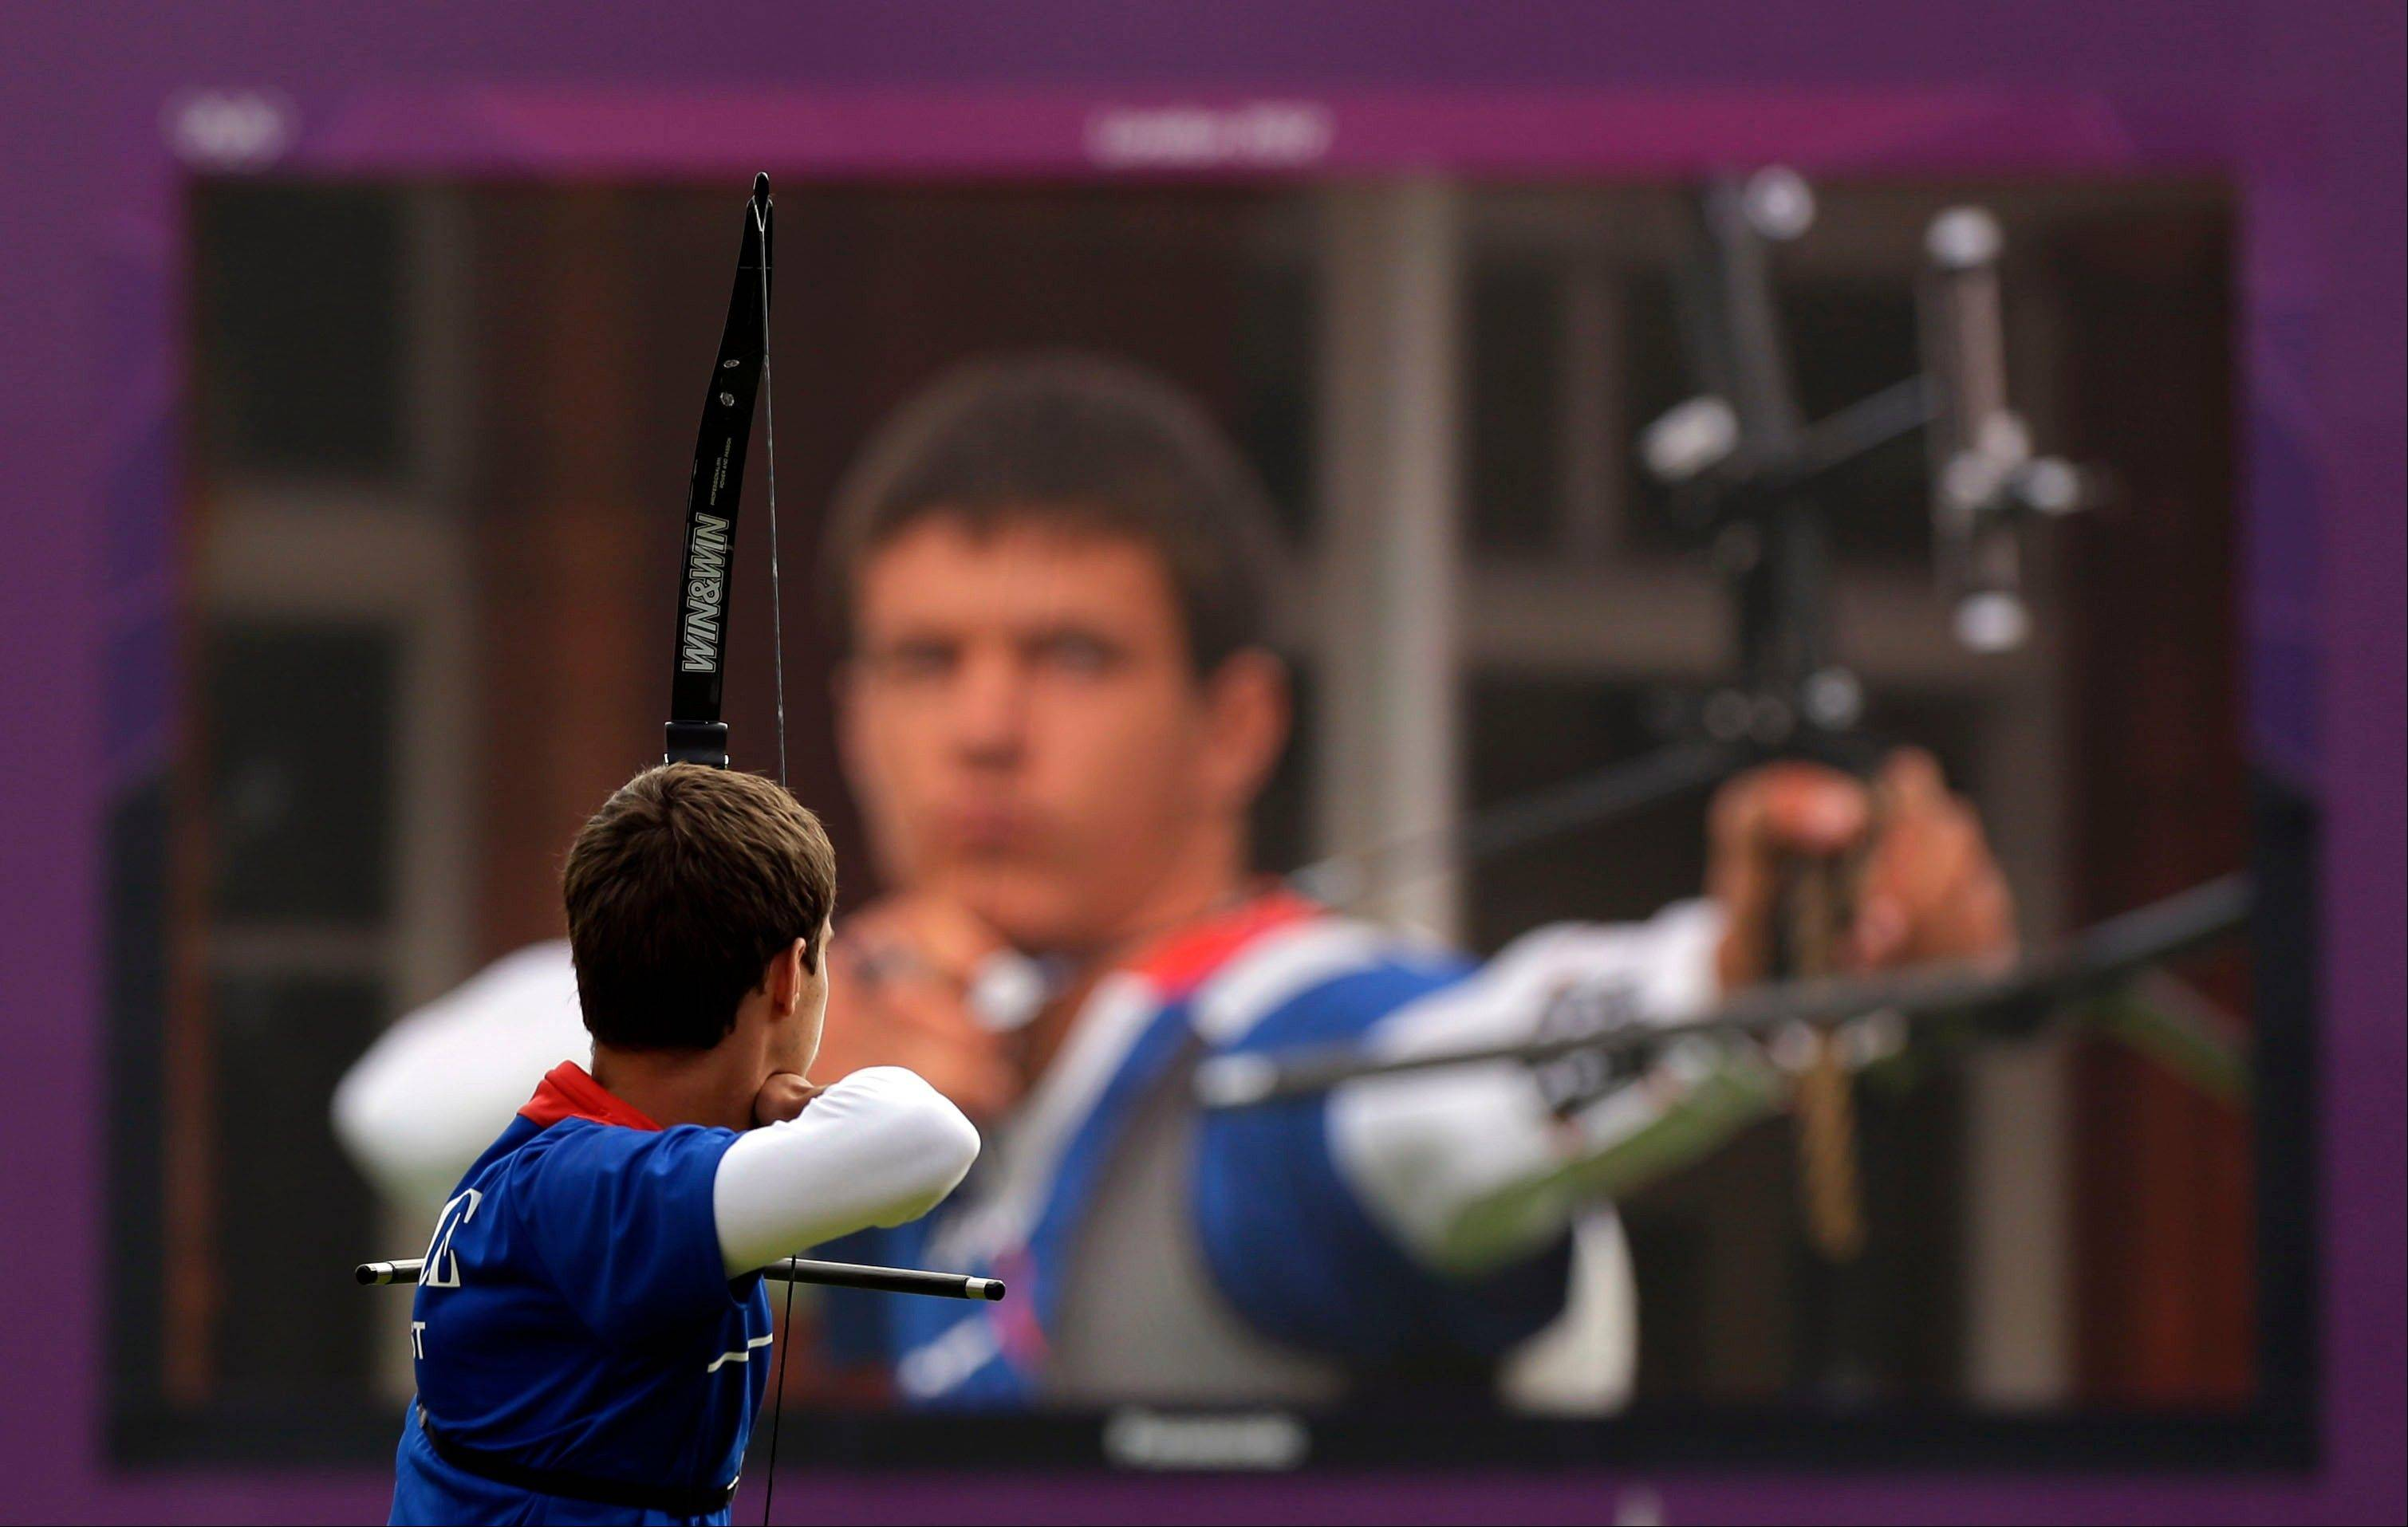 France's Gael Prevost shoots during the men's individual archery competition at the 2012 Summer Olympics, Friday, Aug. 3, 2012, in London.